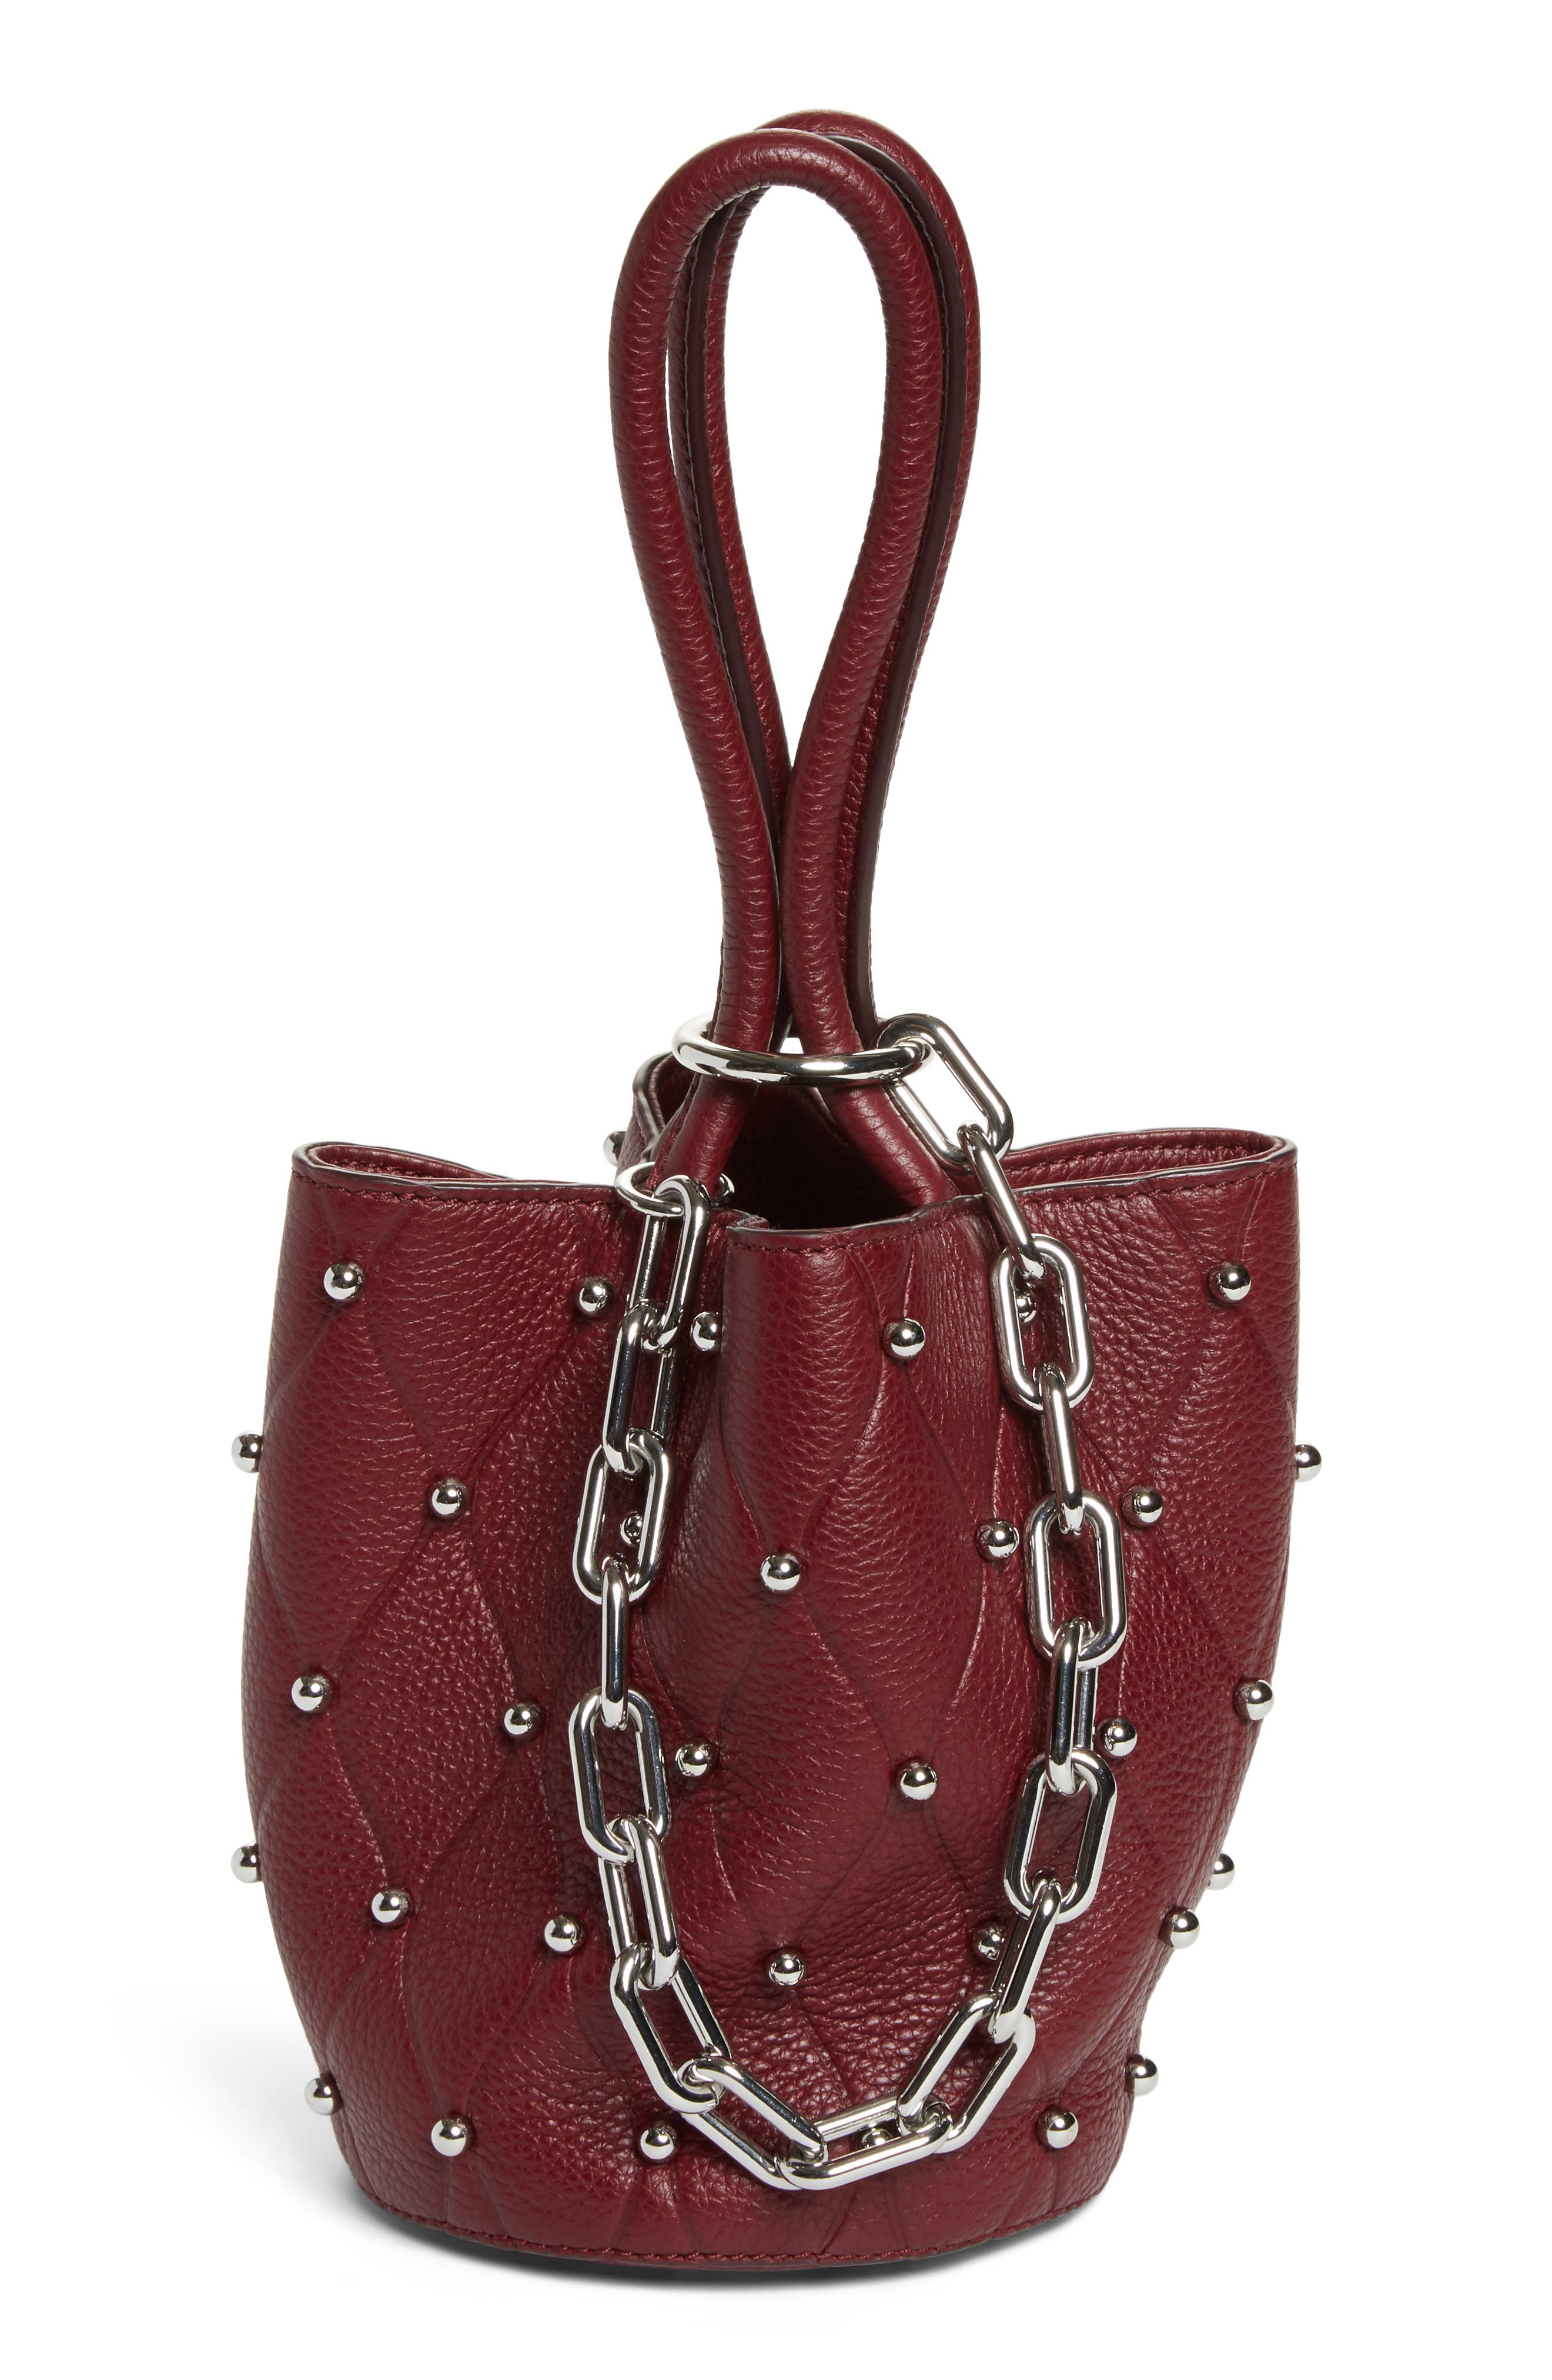 Alternate Image 1 Selected - Alexander Wang Mini Roxy Studded Leather Bucket Bag